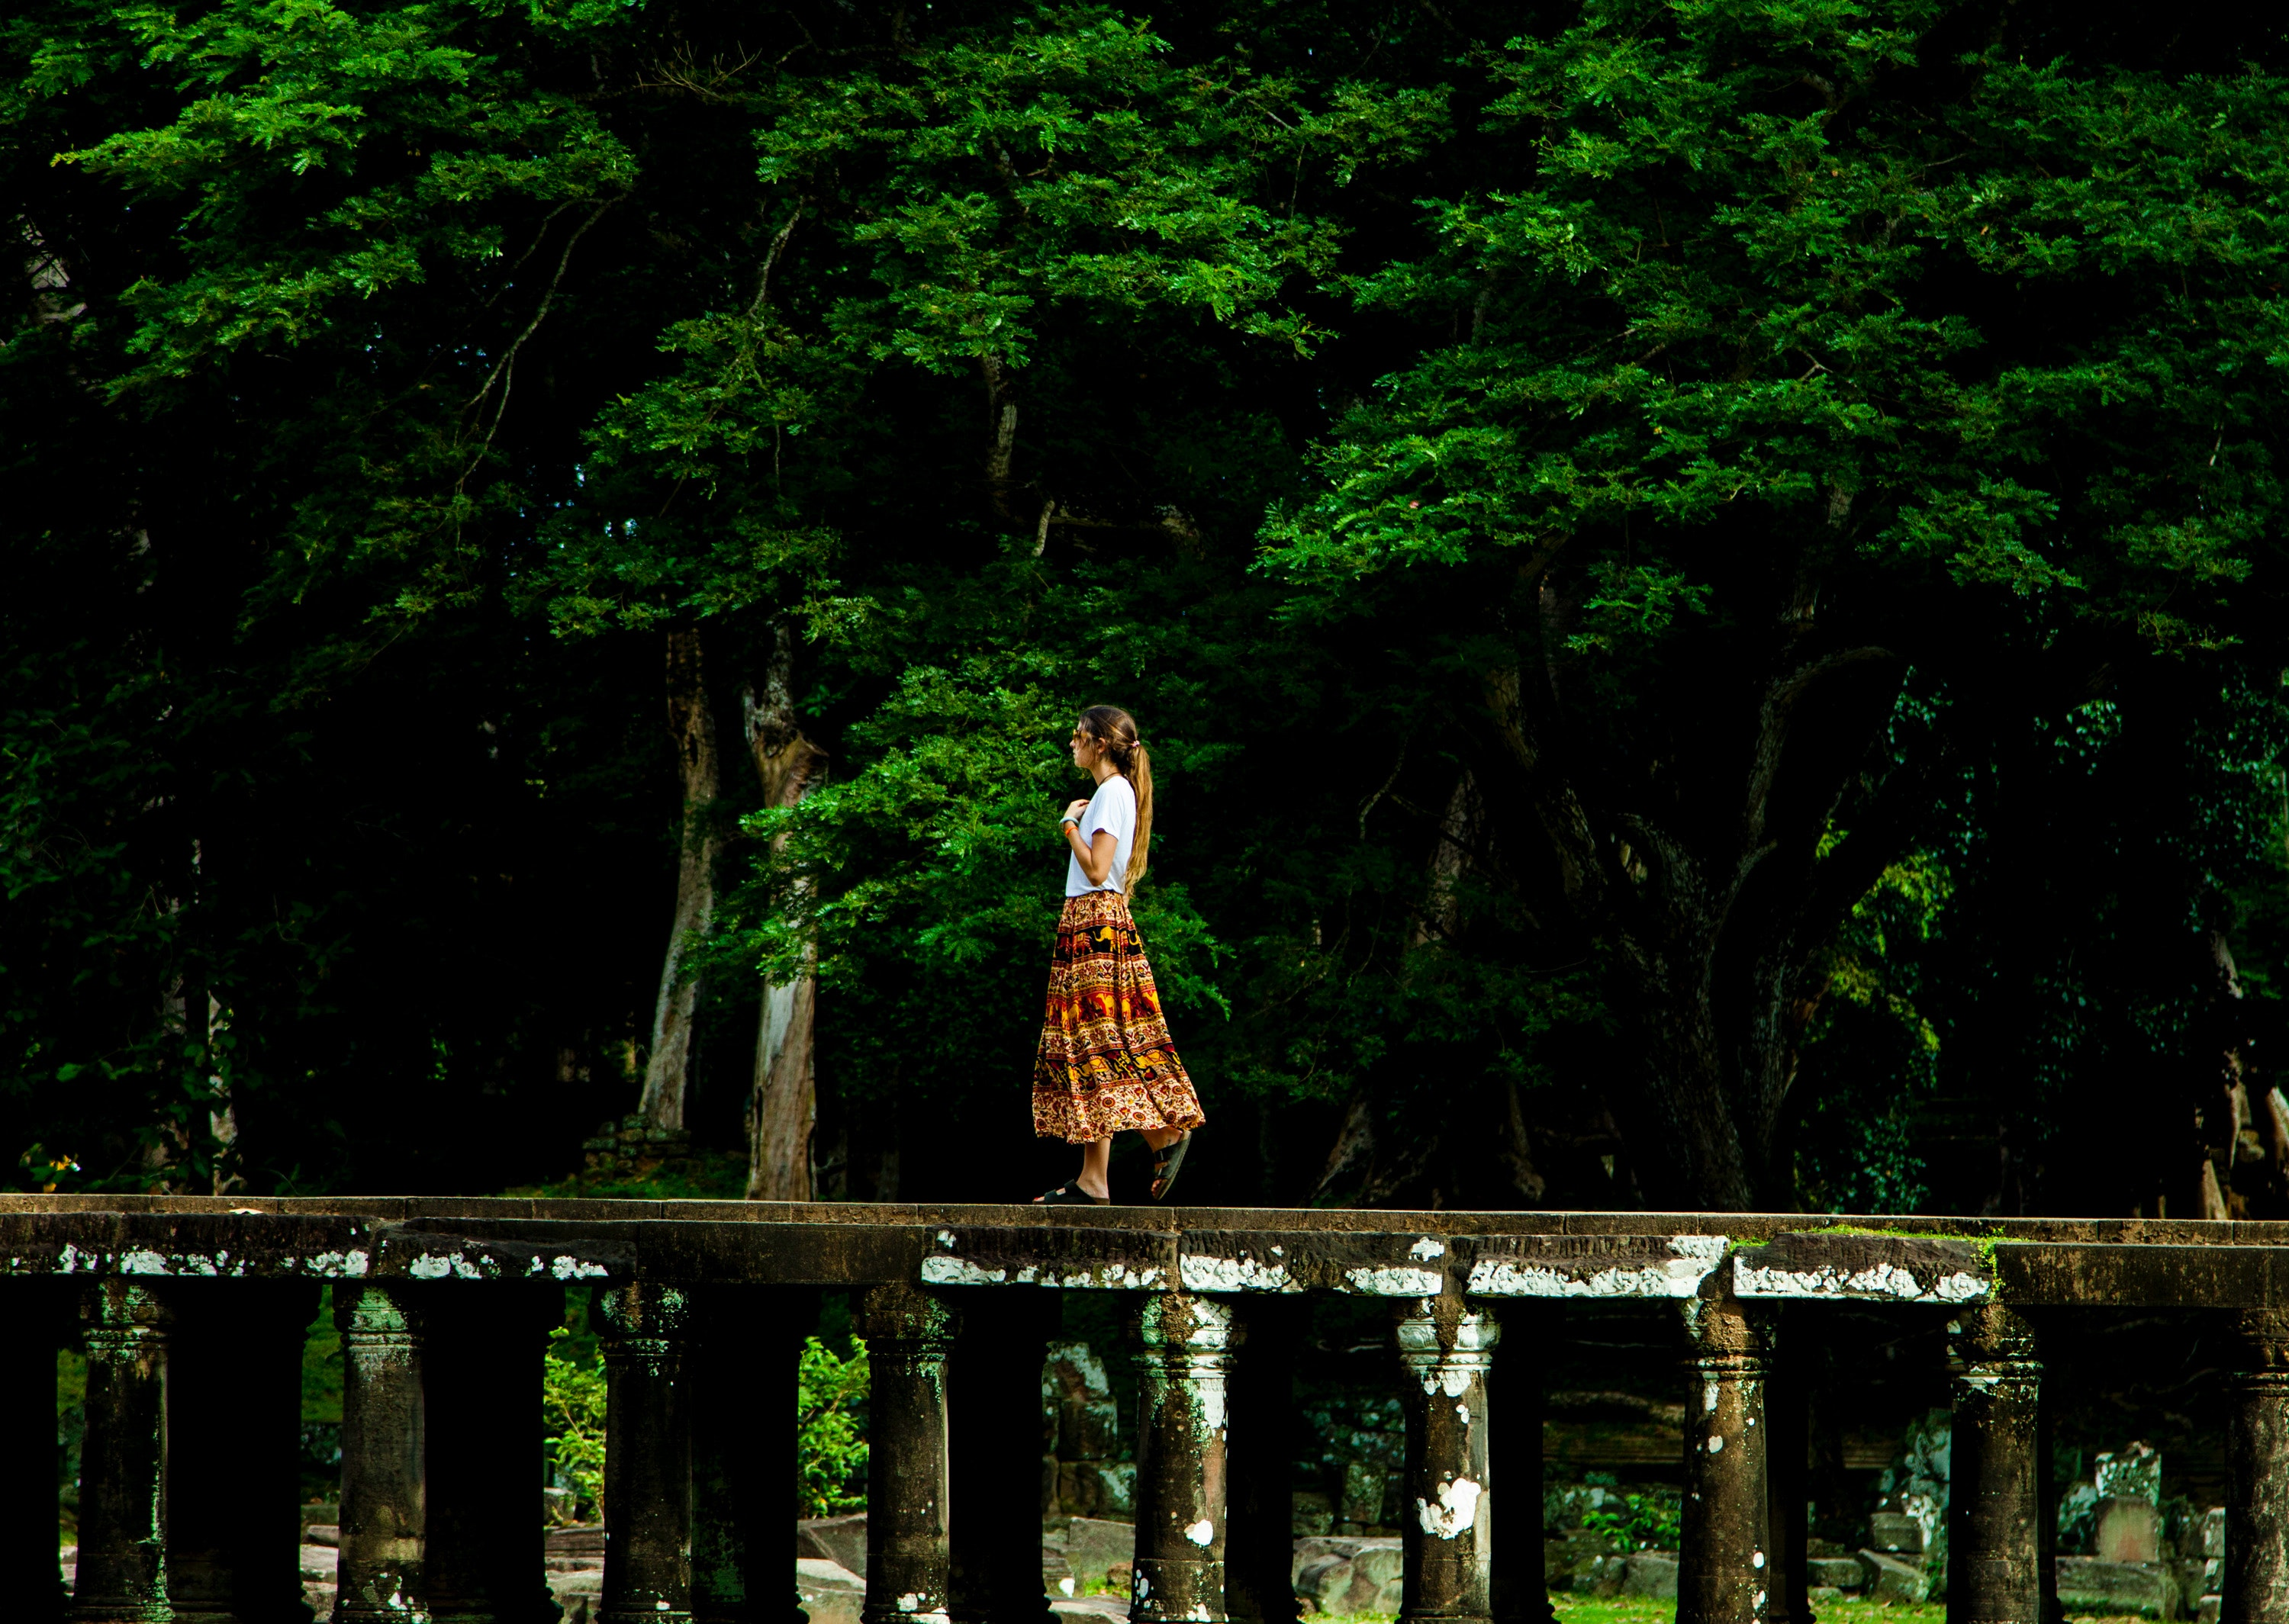 Woman Walking on Bridge Surrounded by Trees, Ancient, Outdoors, Woman, Walking, HQ Photo